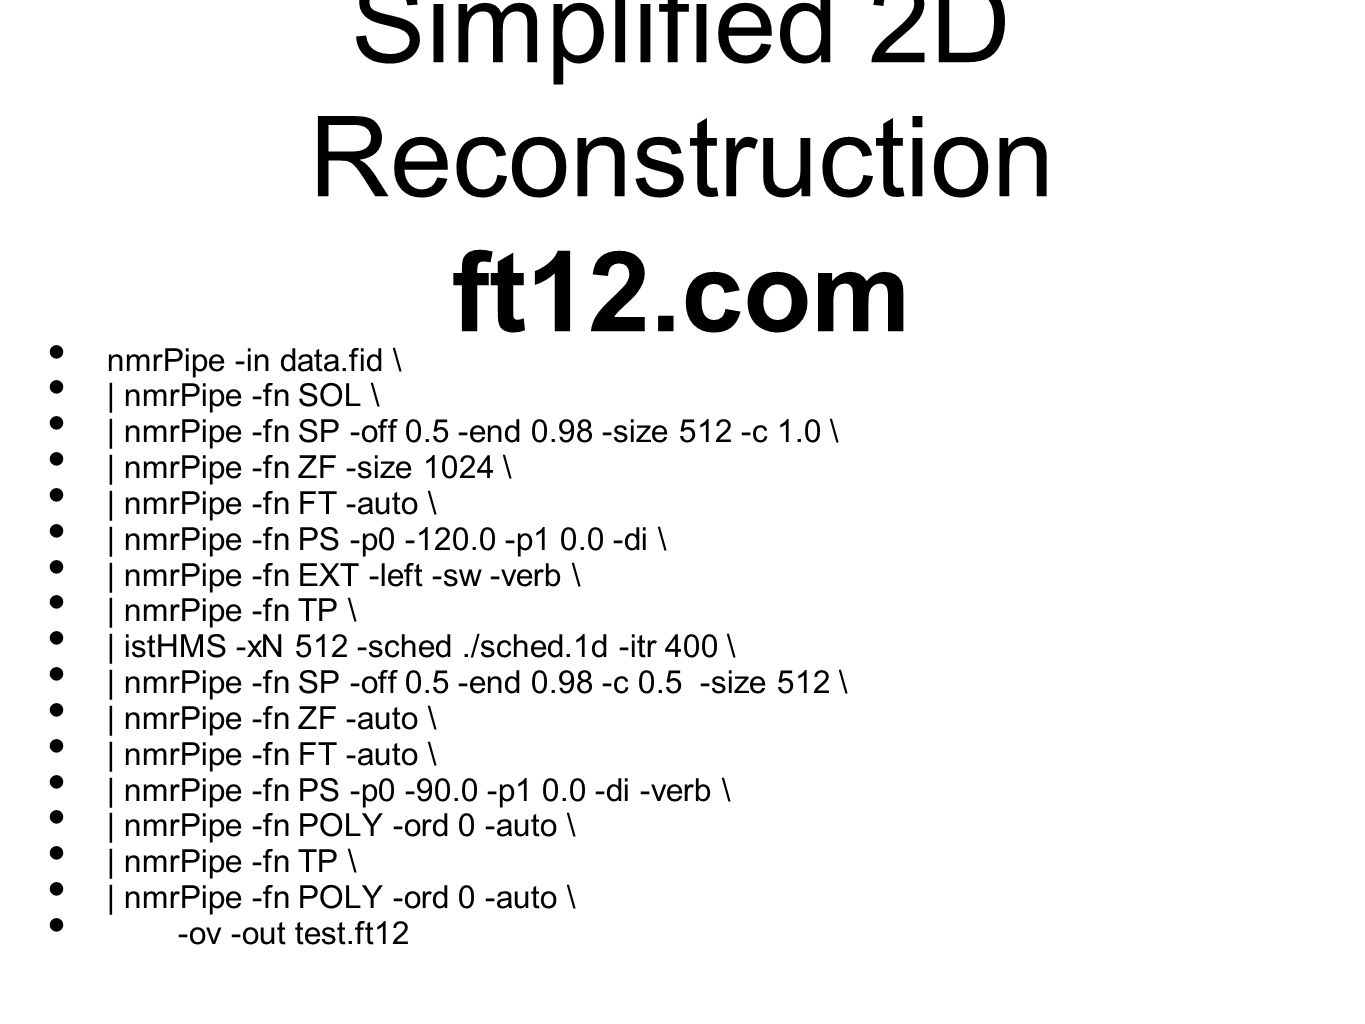 Simplified 2D Reconstruction ft12.com